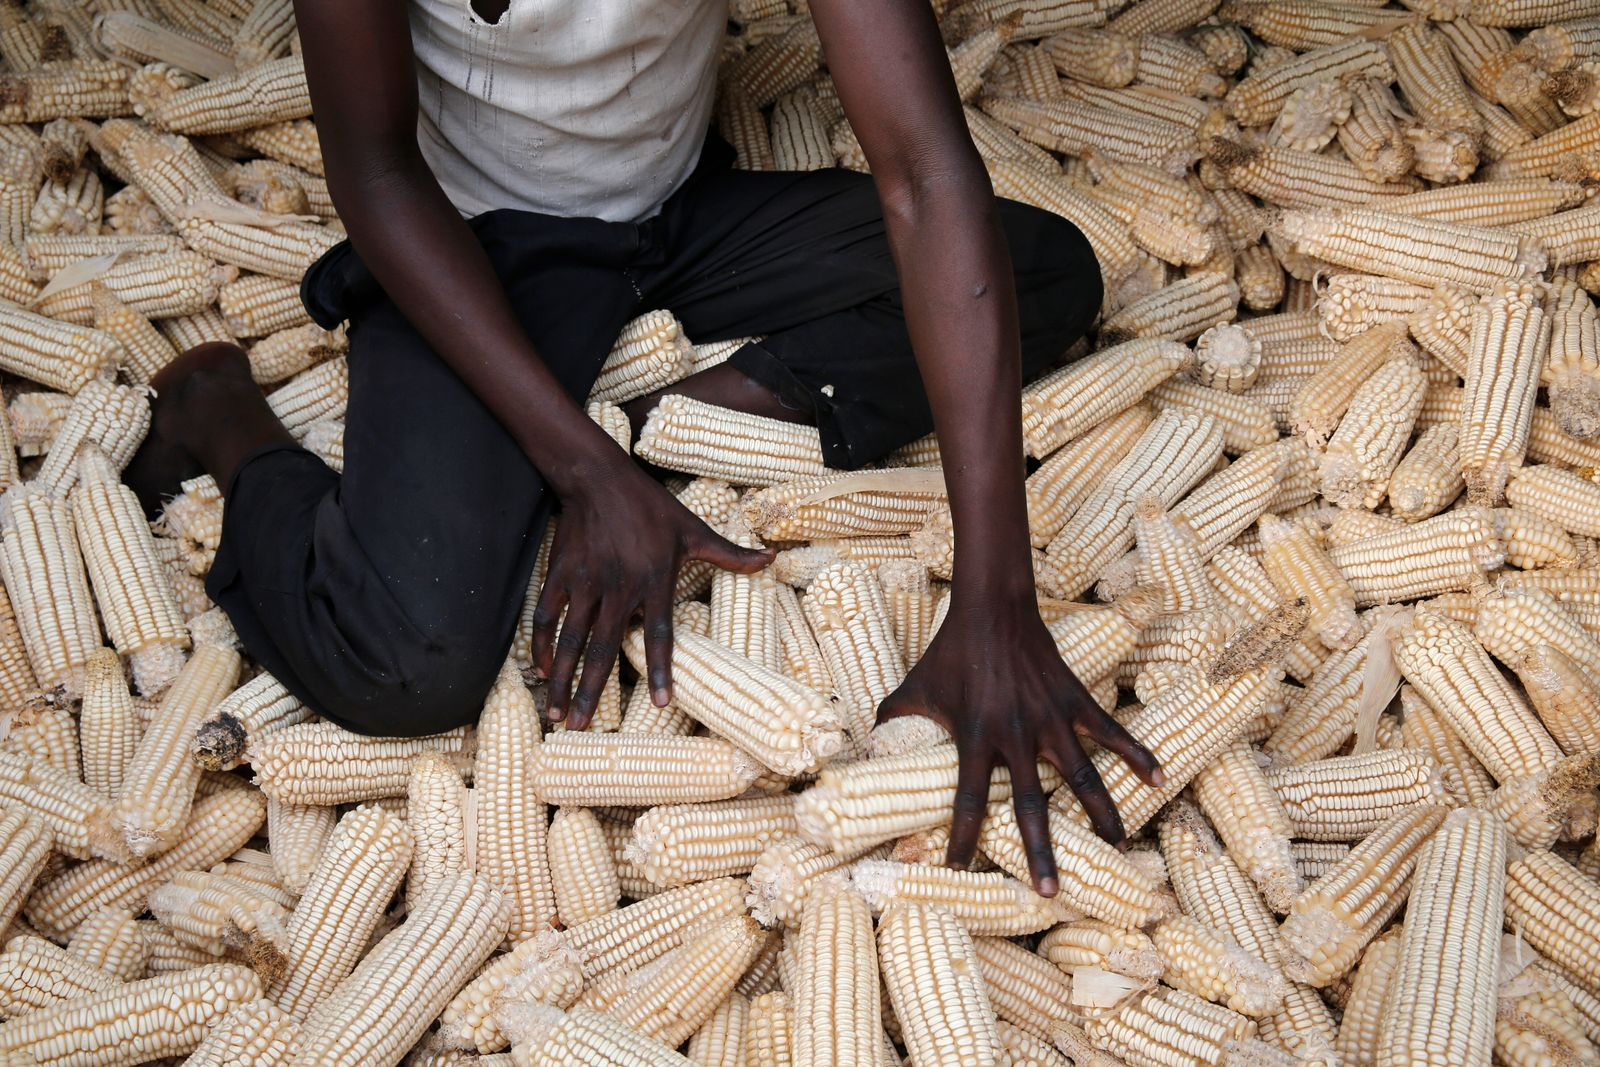 Boy gathering maize. Uganda (Godong/UIG)